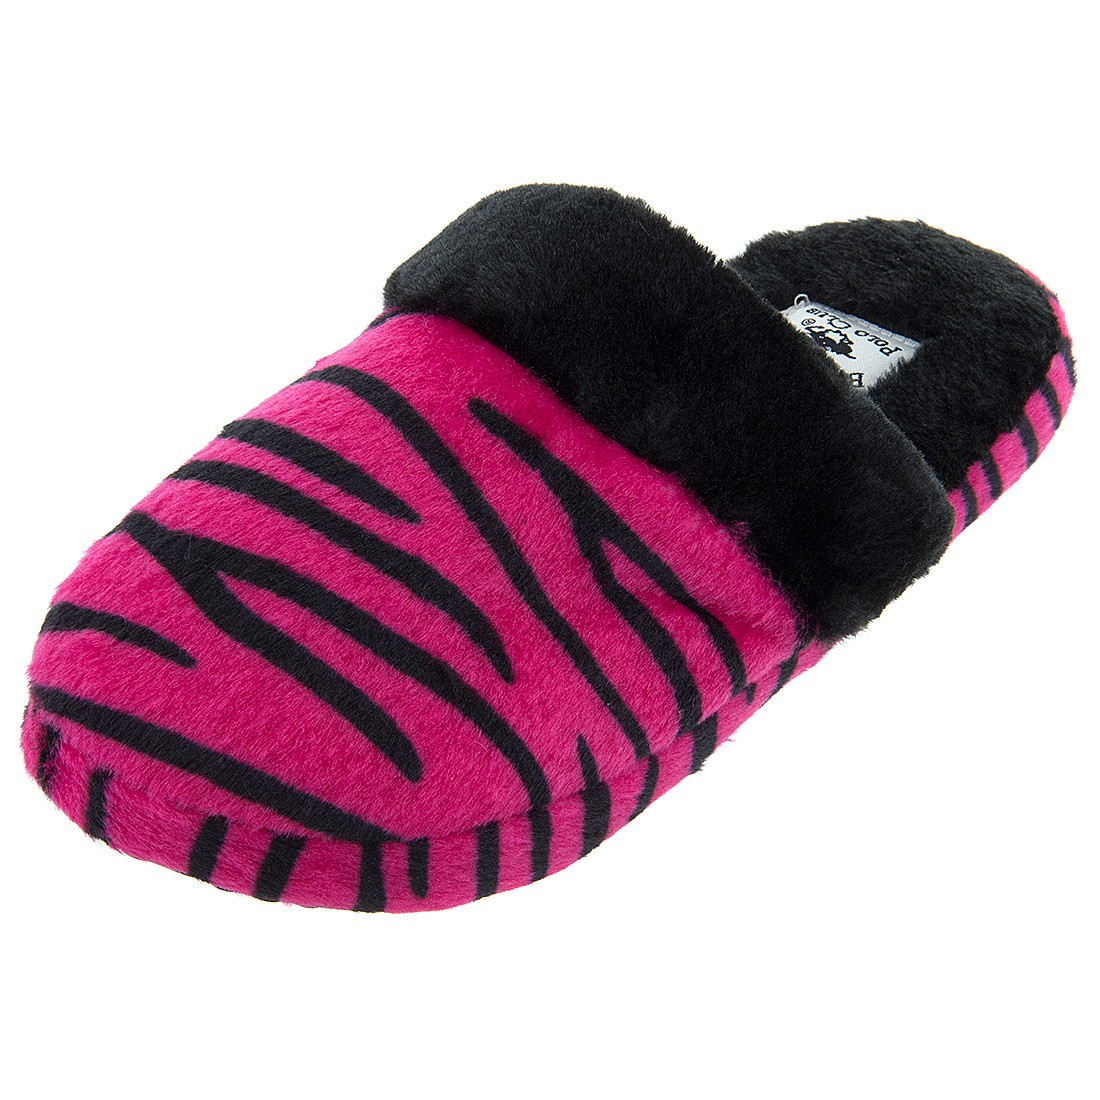 Beverly Hills Polo Pink Tiger Women's Slippers